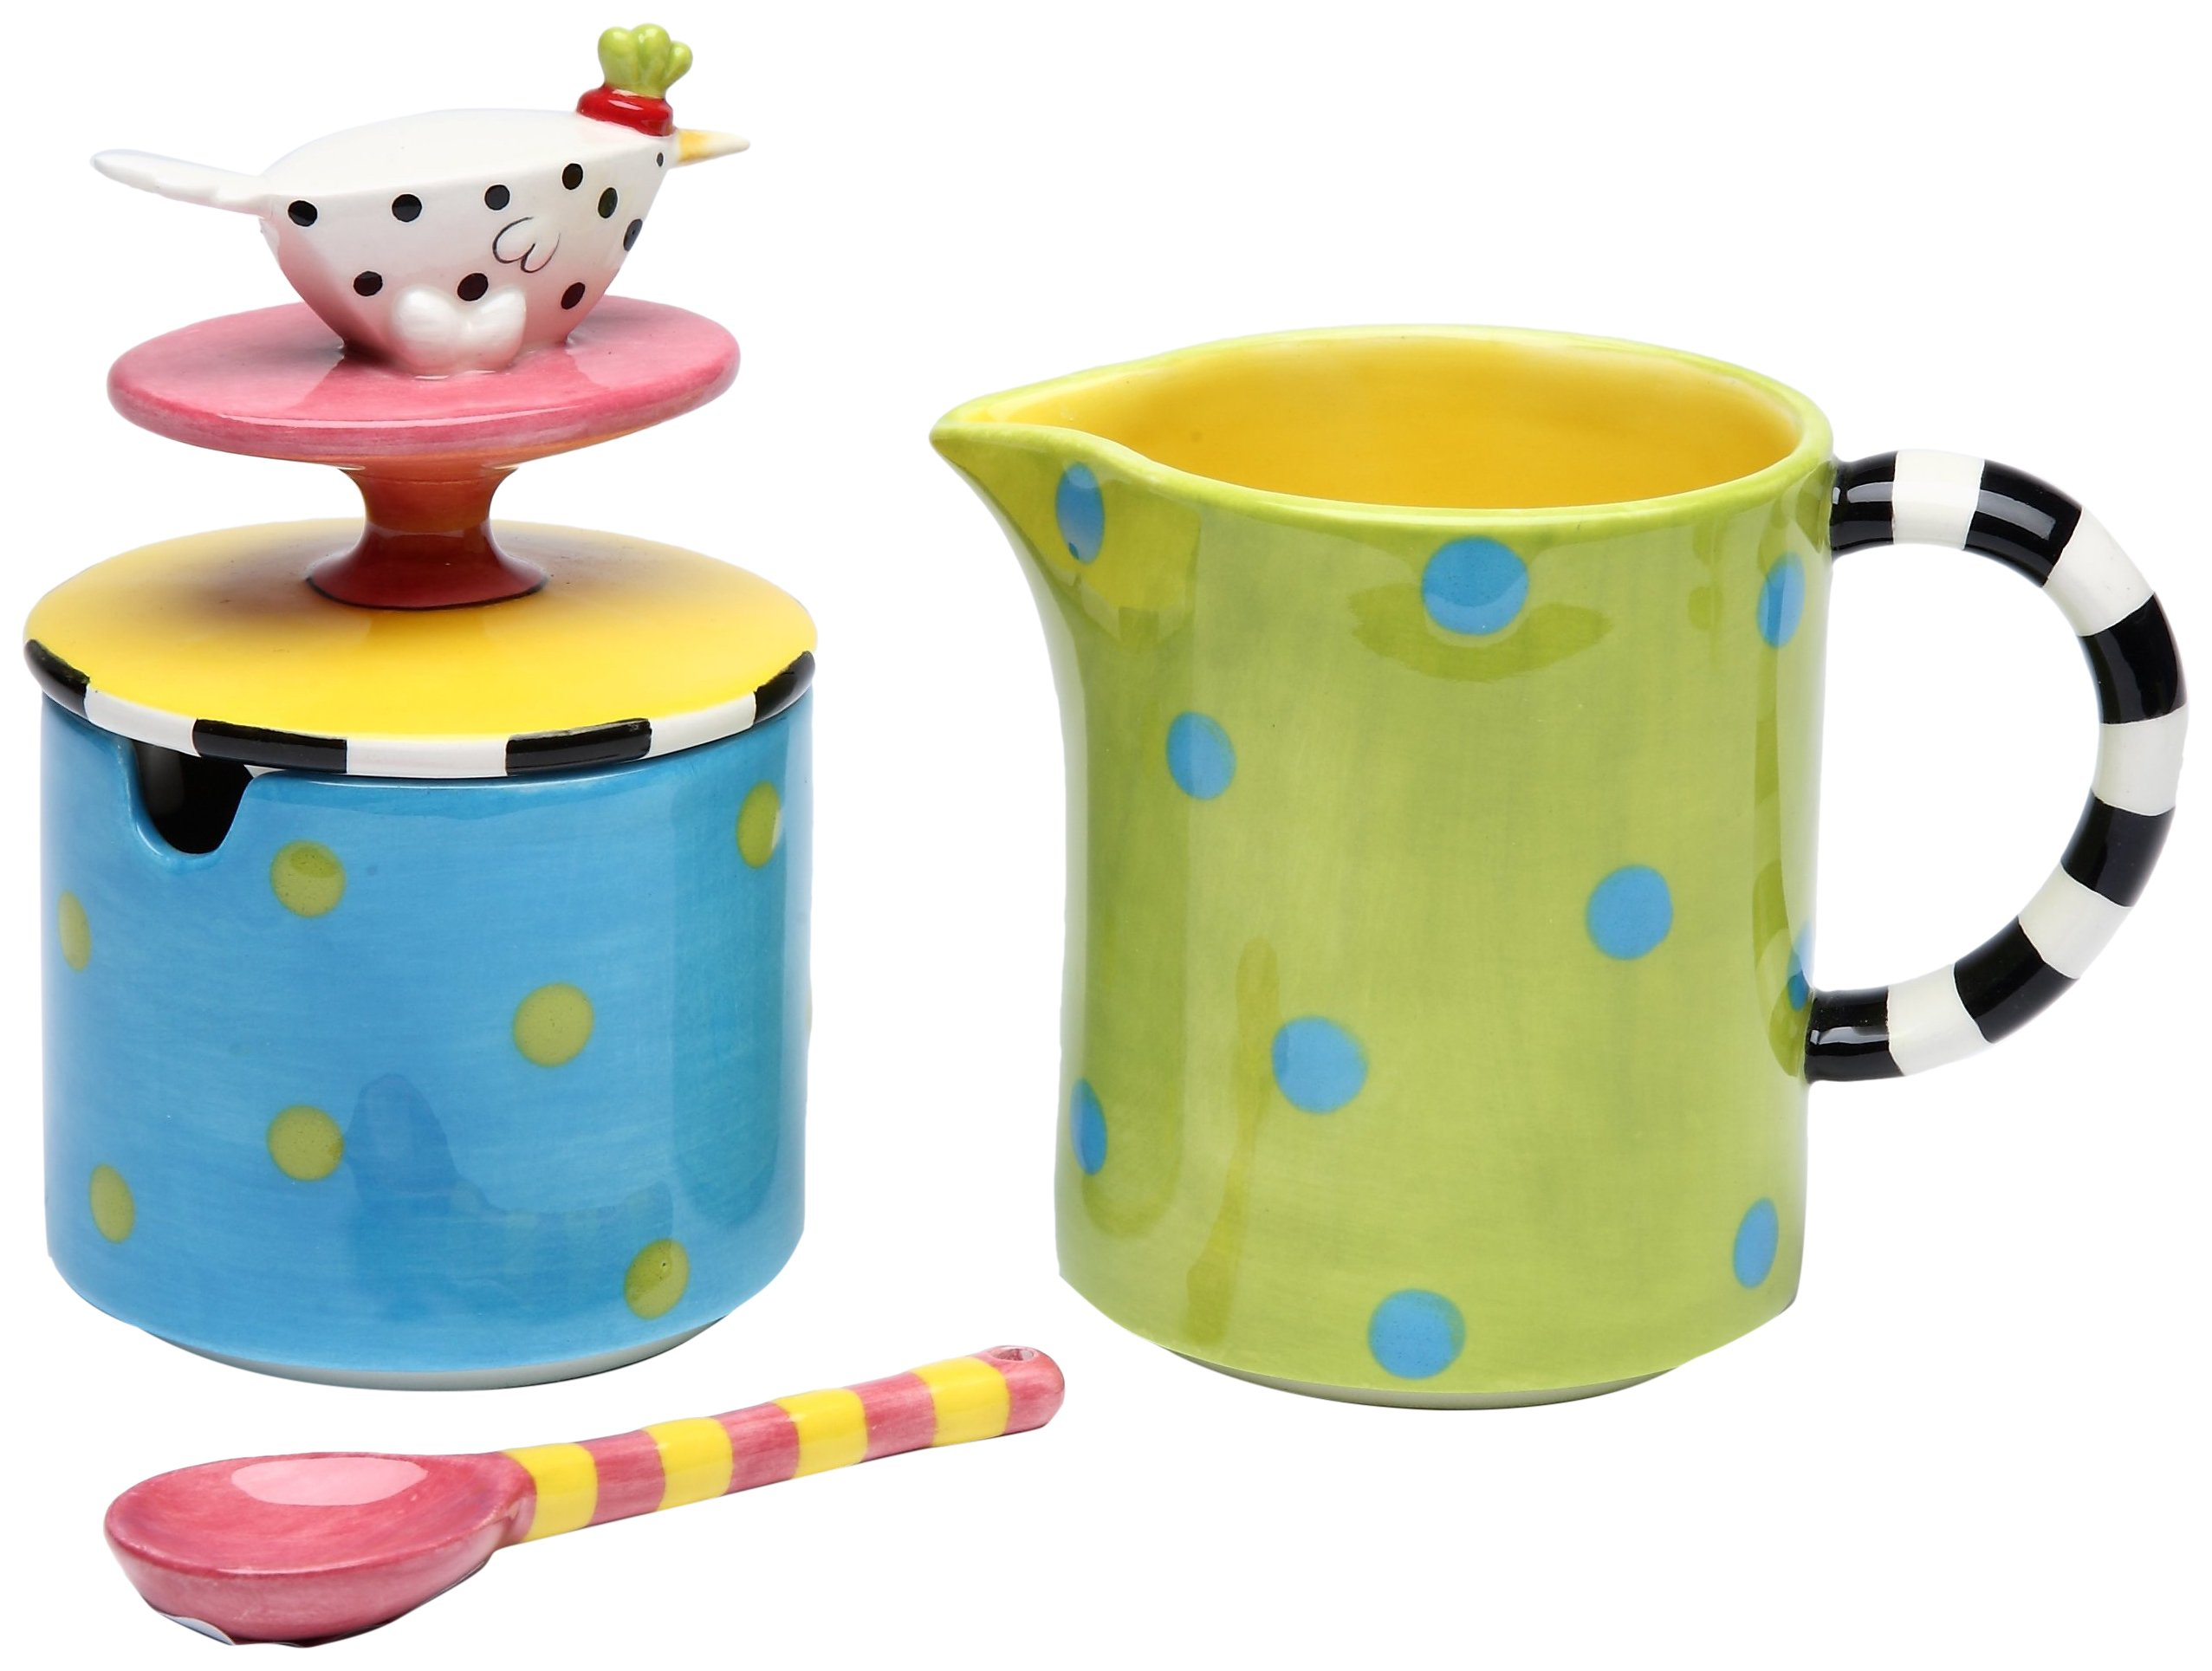 StealStreet SS-CG-62664, 4.38 Inch Polka Dotted Bird Lid Sugar and Creamer Set with Spoon